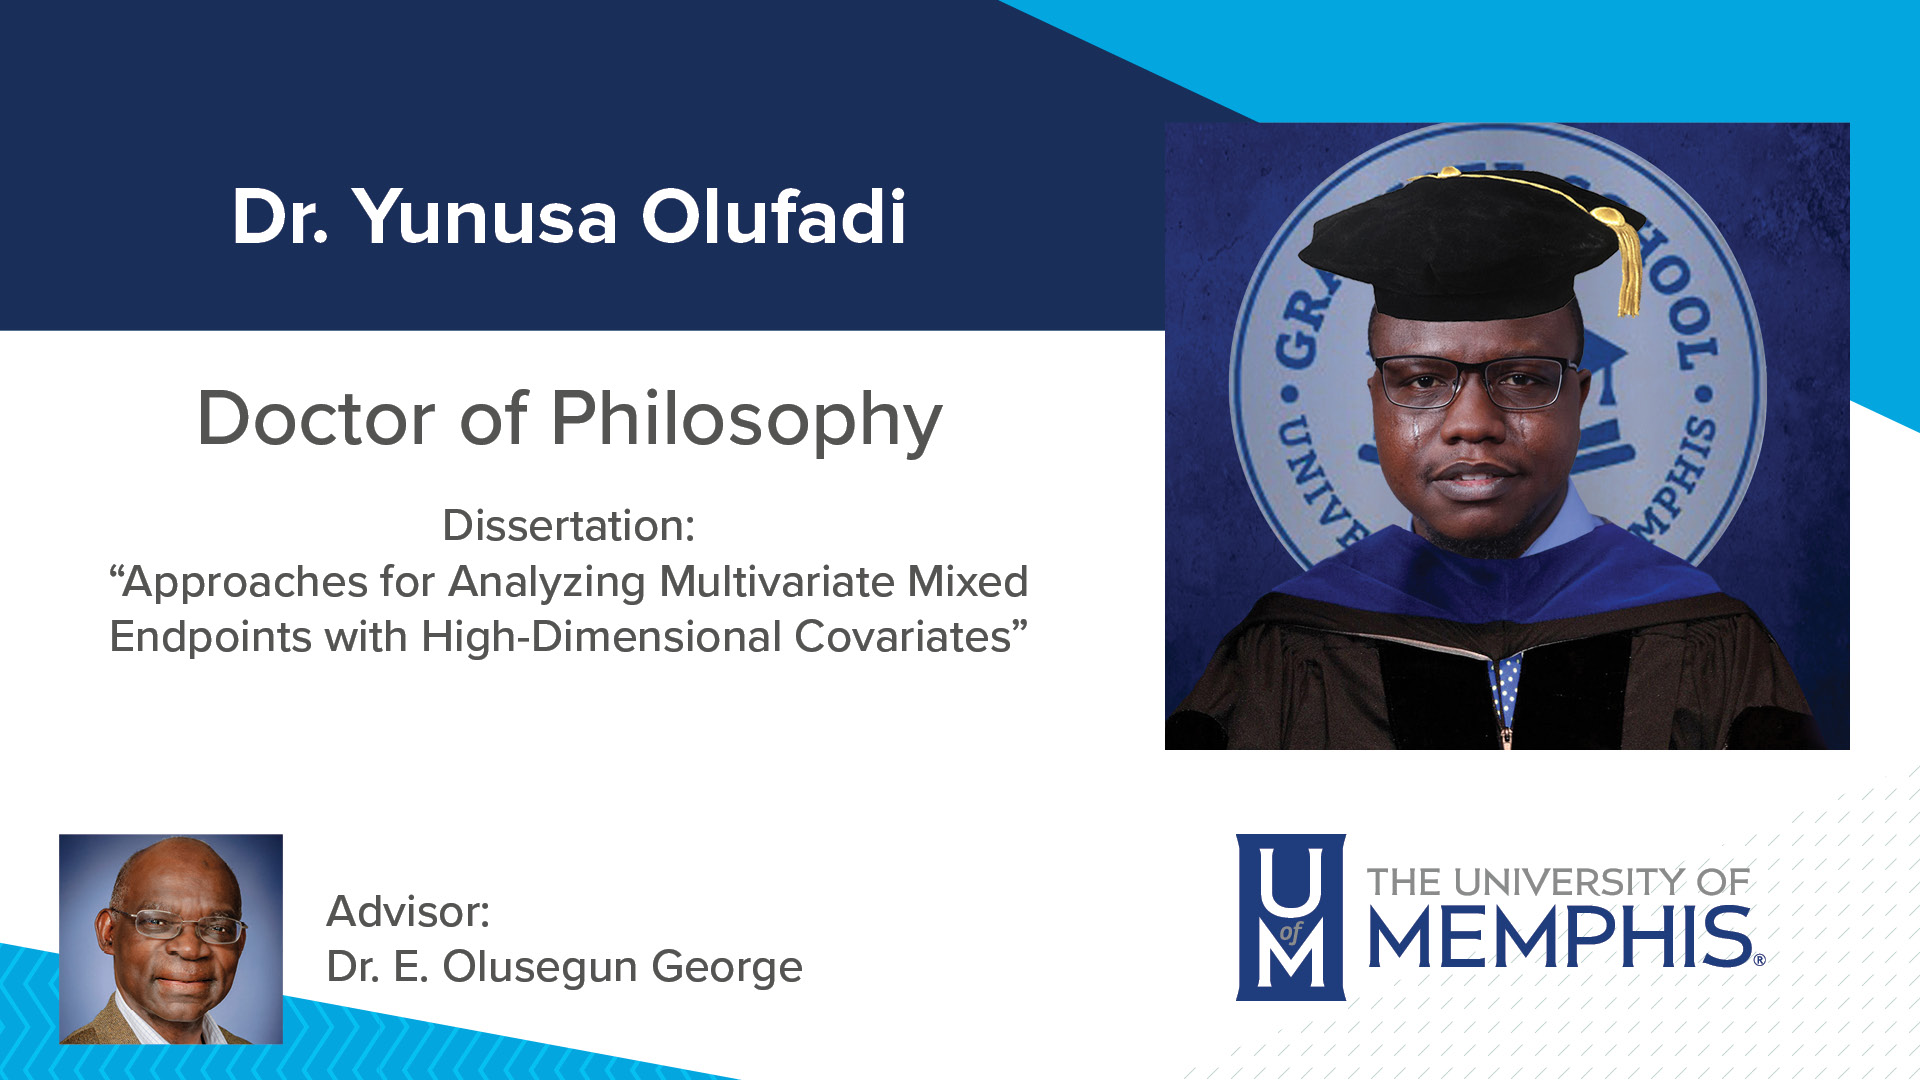 """Dr. Yunusa Olufadi Dissertation: """"Approaches for Analyzing Multivariate Mixed Endpoints With High-Dimensional Covariates """" Major Professor: Dr. E. Olusegun George"""